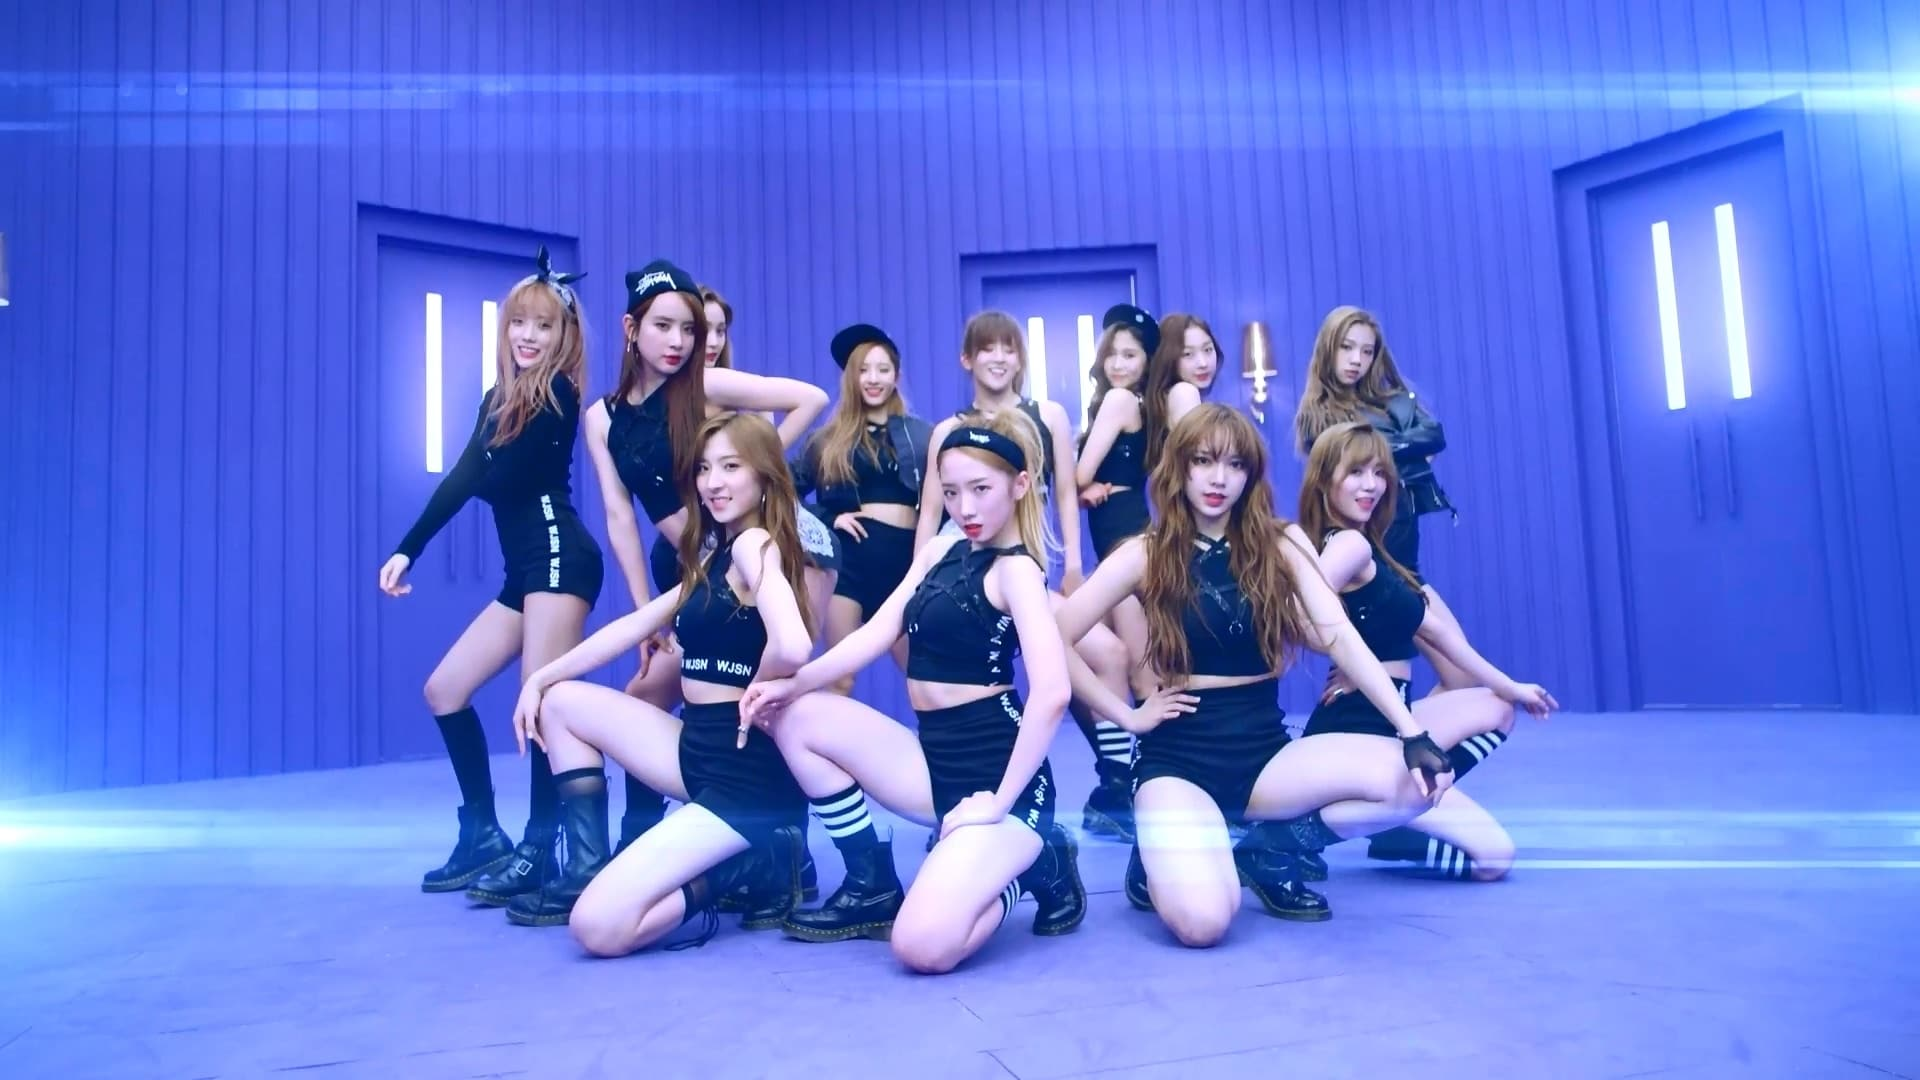 WJSN / Cosmic Girls